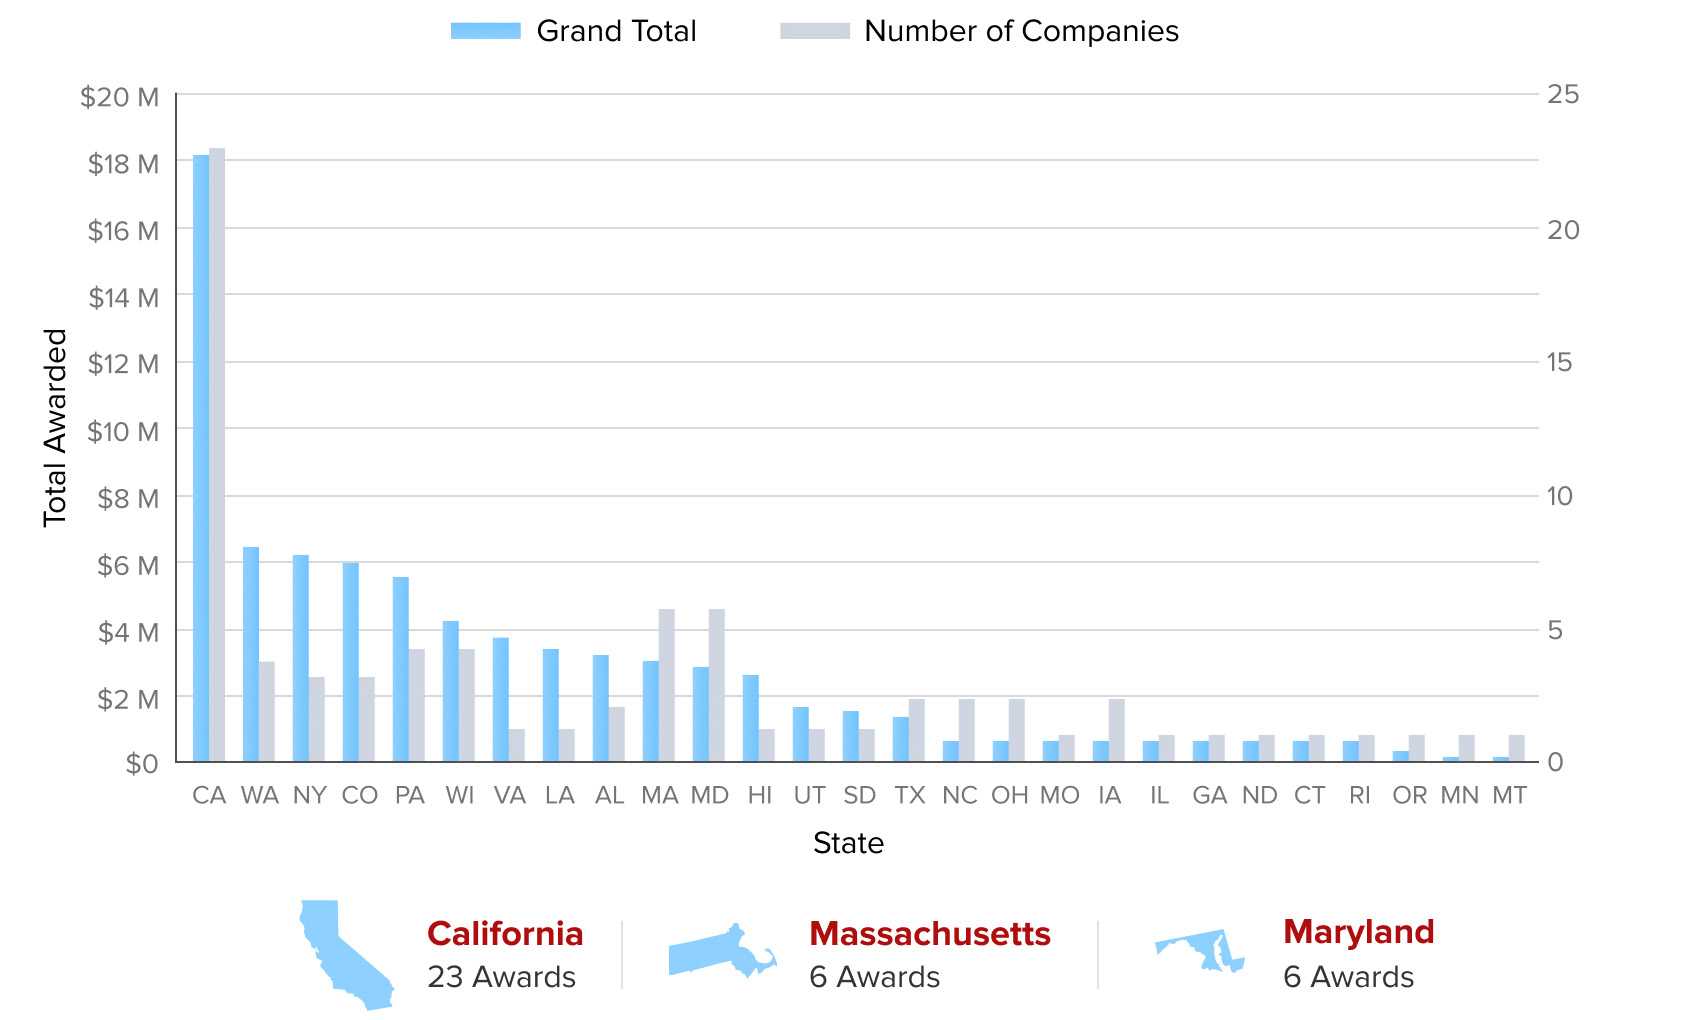 Number of Companies and $ Awarded, by State